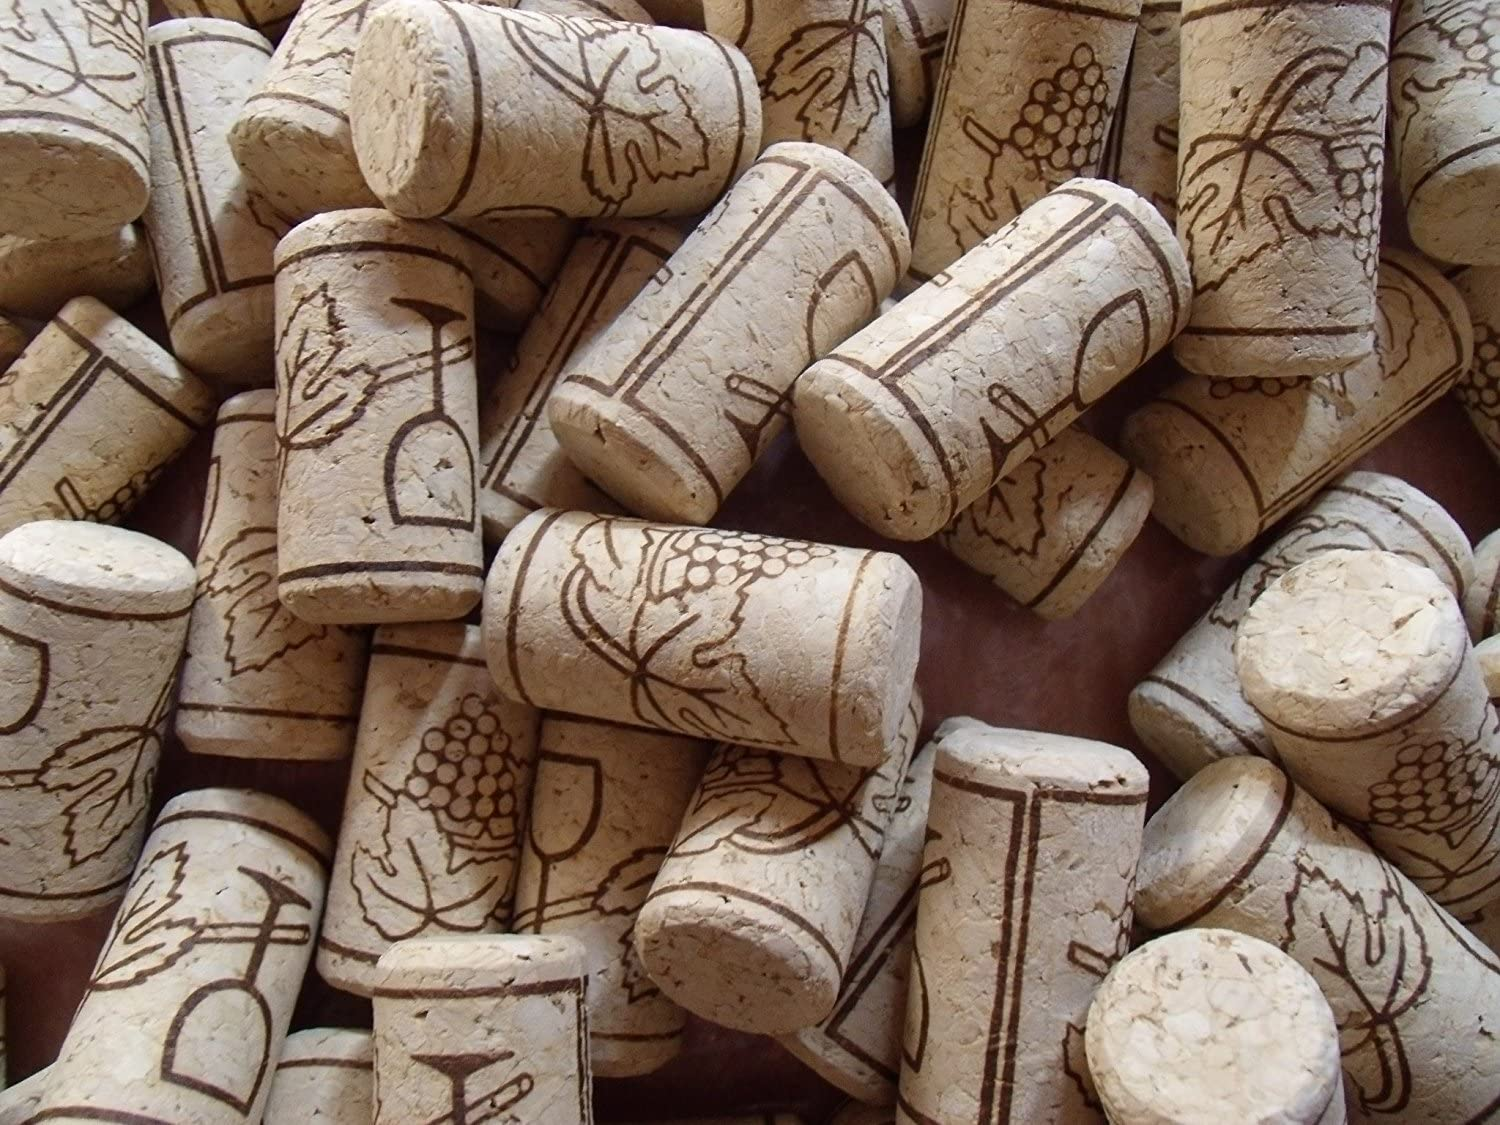 100 Goege Recycled Wine Corks,Natural Straight Softwood Wine Bottling Corks,Fits Most Bottles,Non-Leak Airtight Seal For Wine Making Craft,Chemical Free